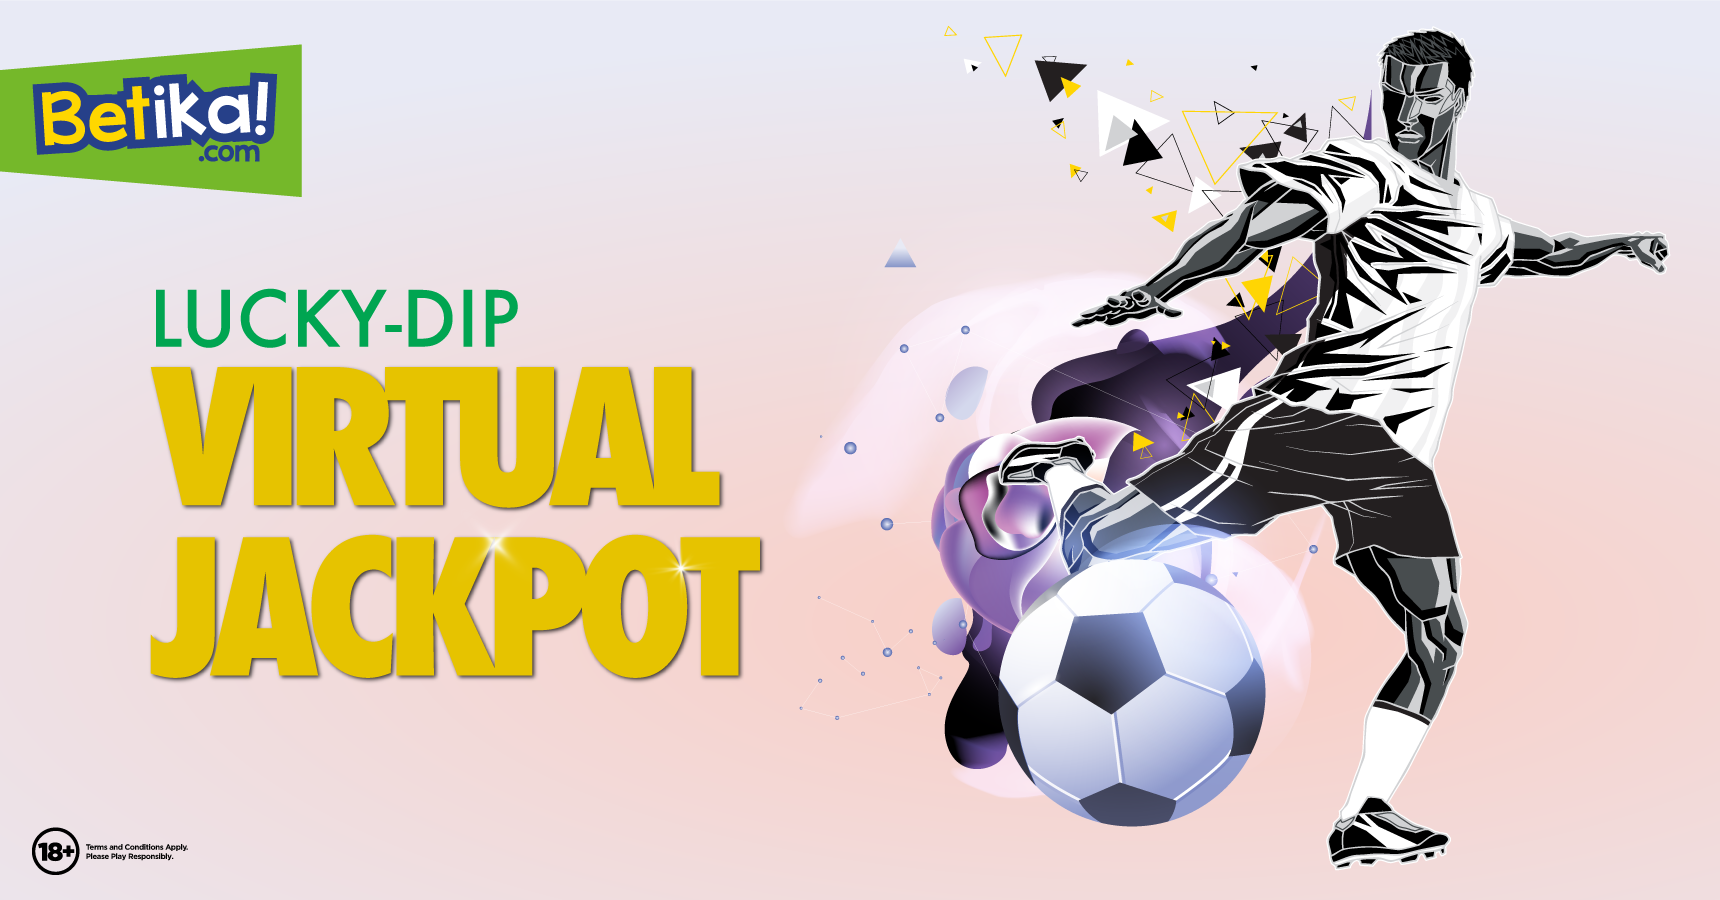 WIN UP TO KSH1 MILLION IN BETIKA VIRTUAL JACKPOT